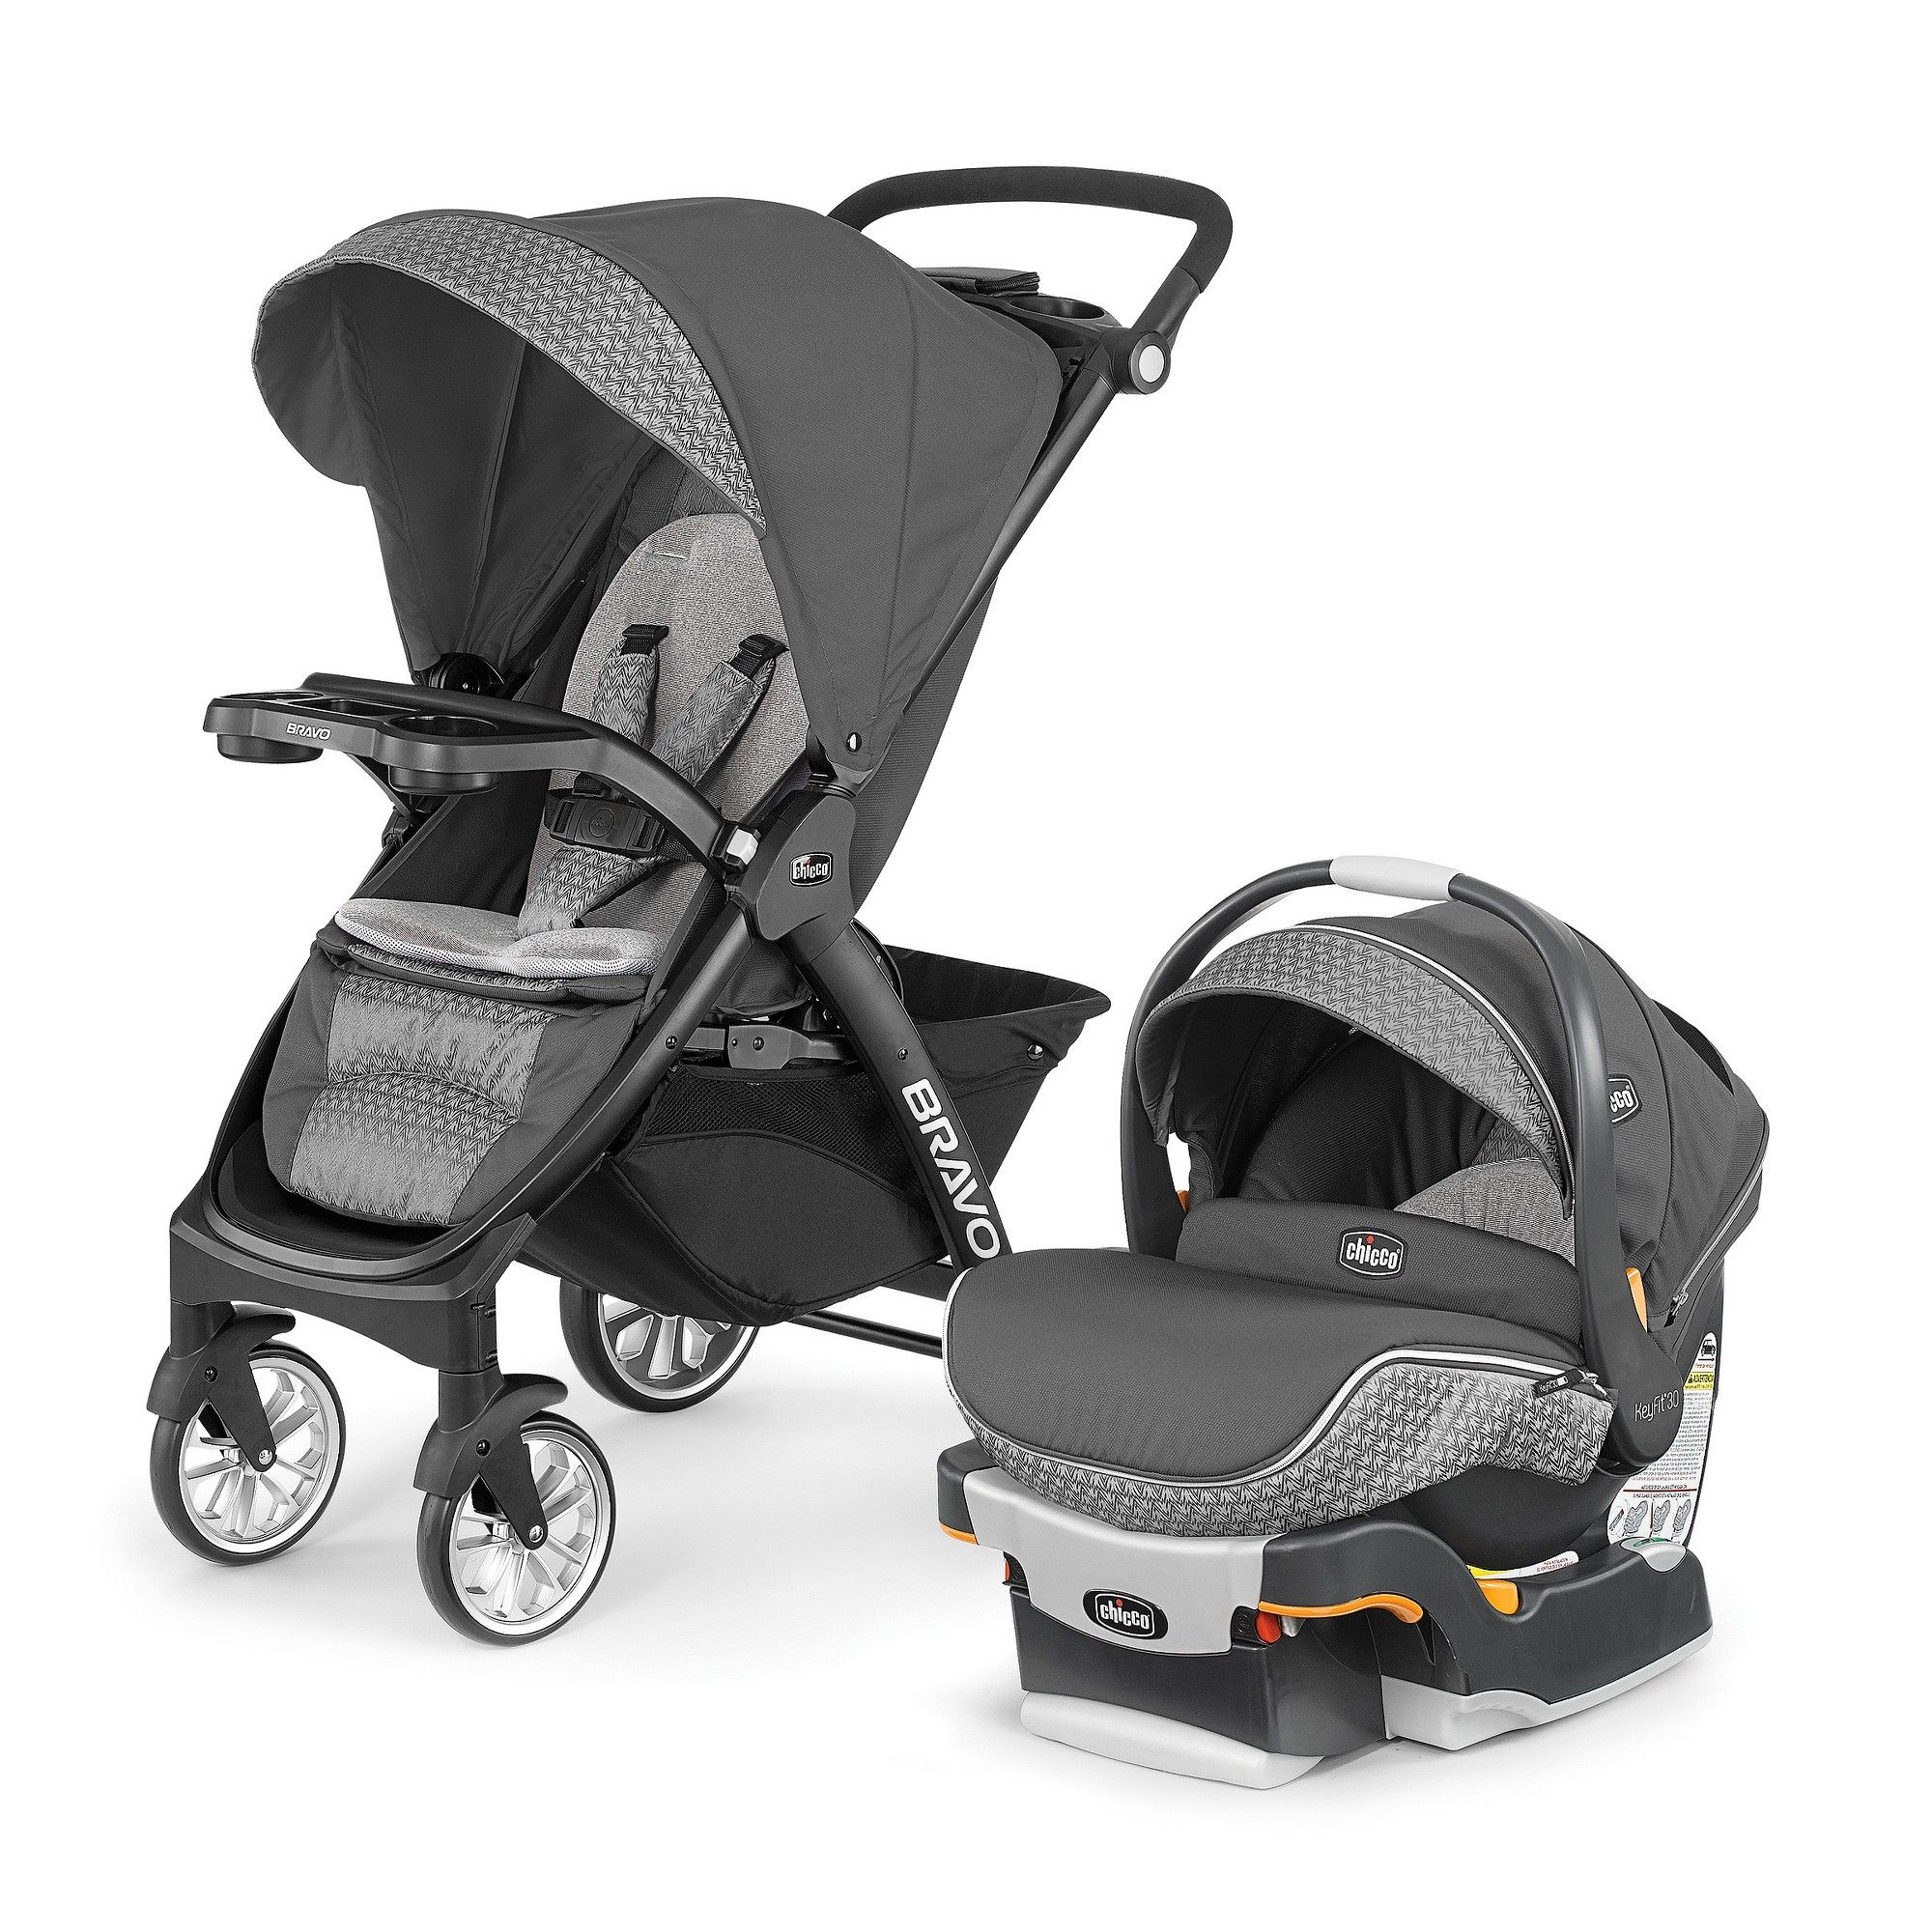 Chicco Bravo LE Travel System Silhouette Travel system